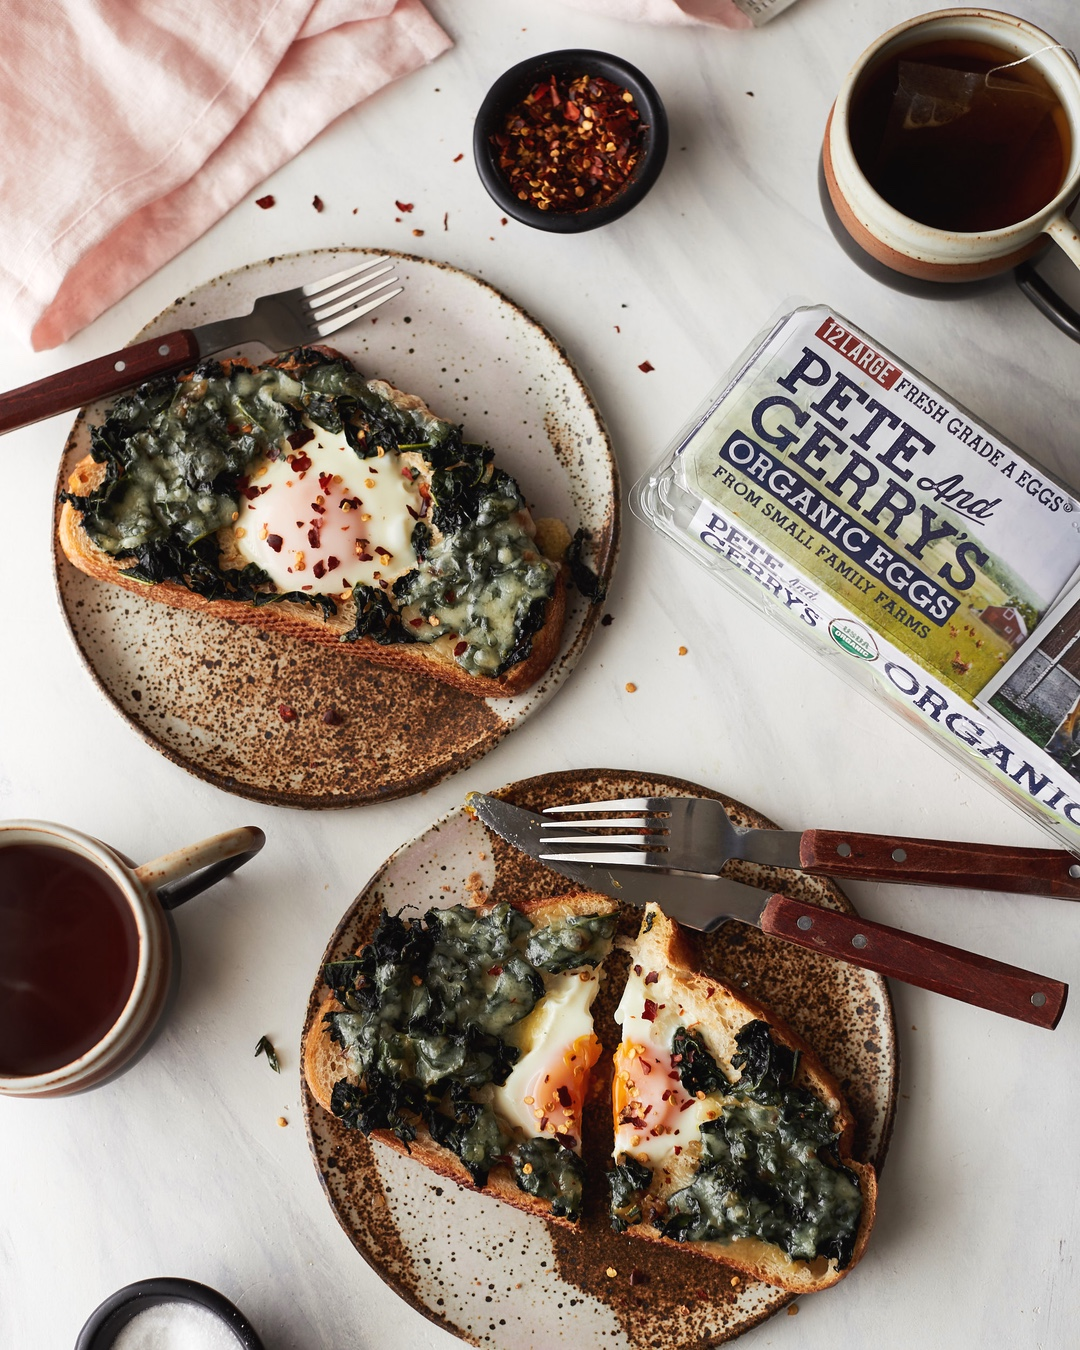 garlic-kale-egg-in-hole-ig